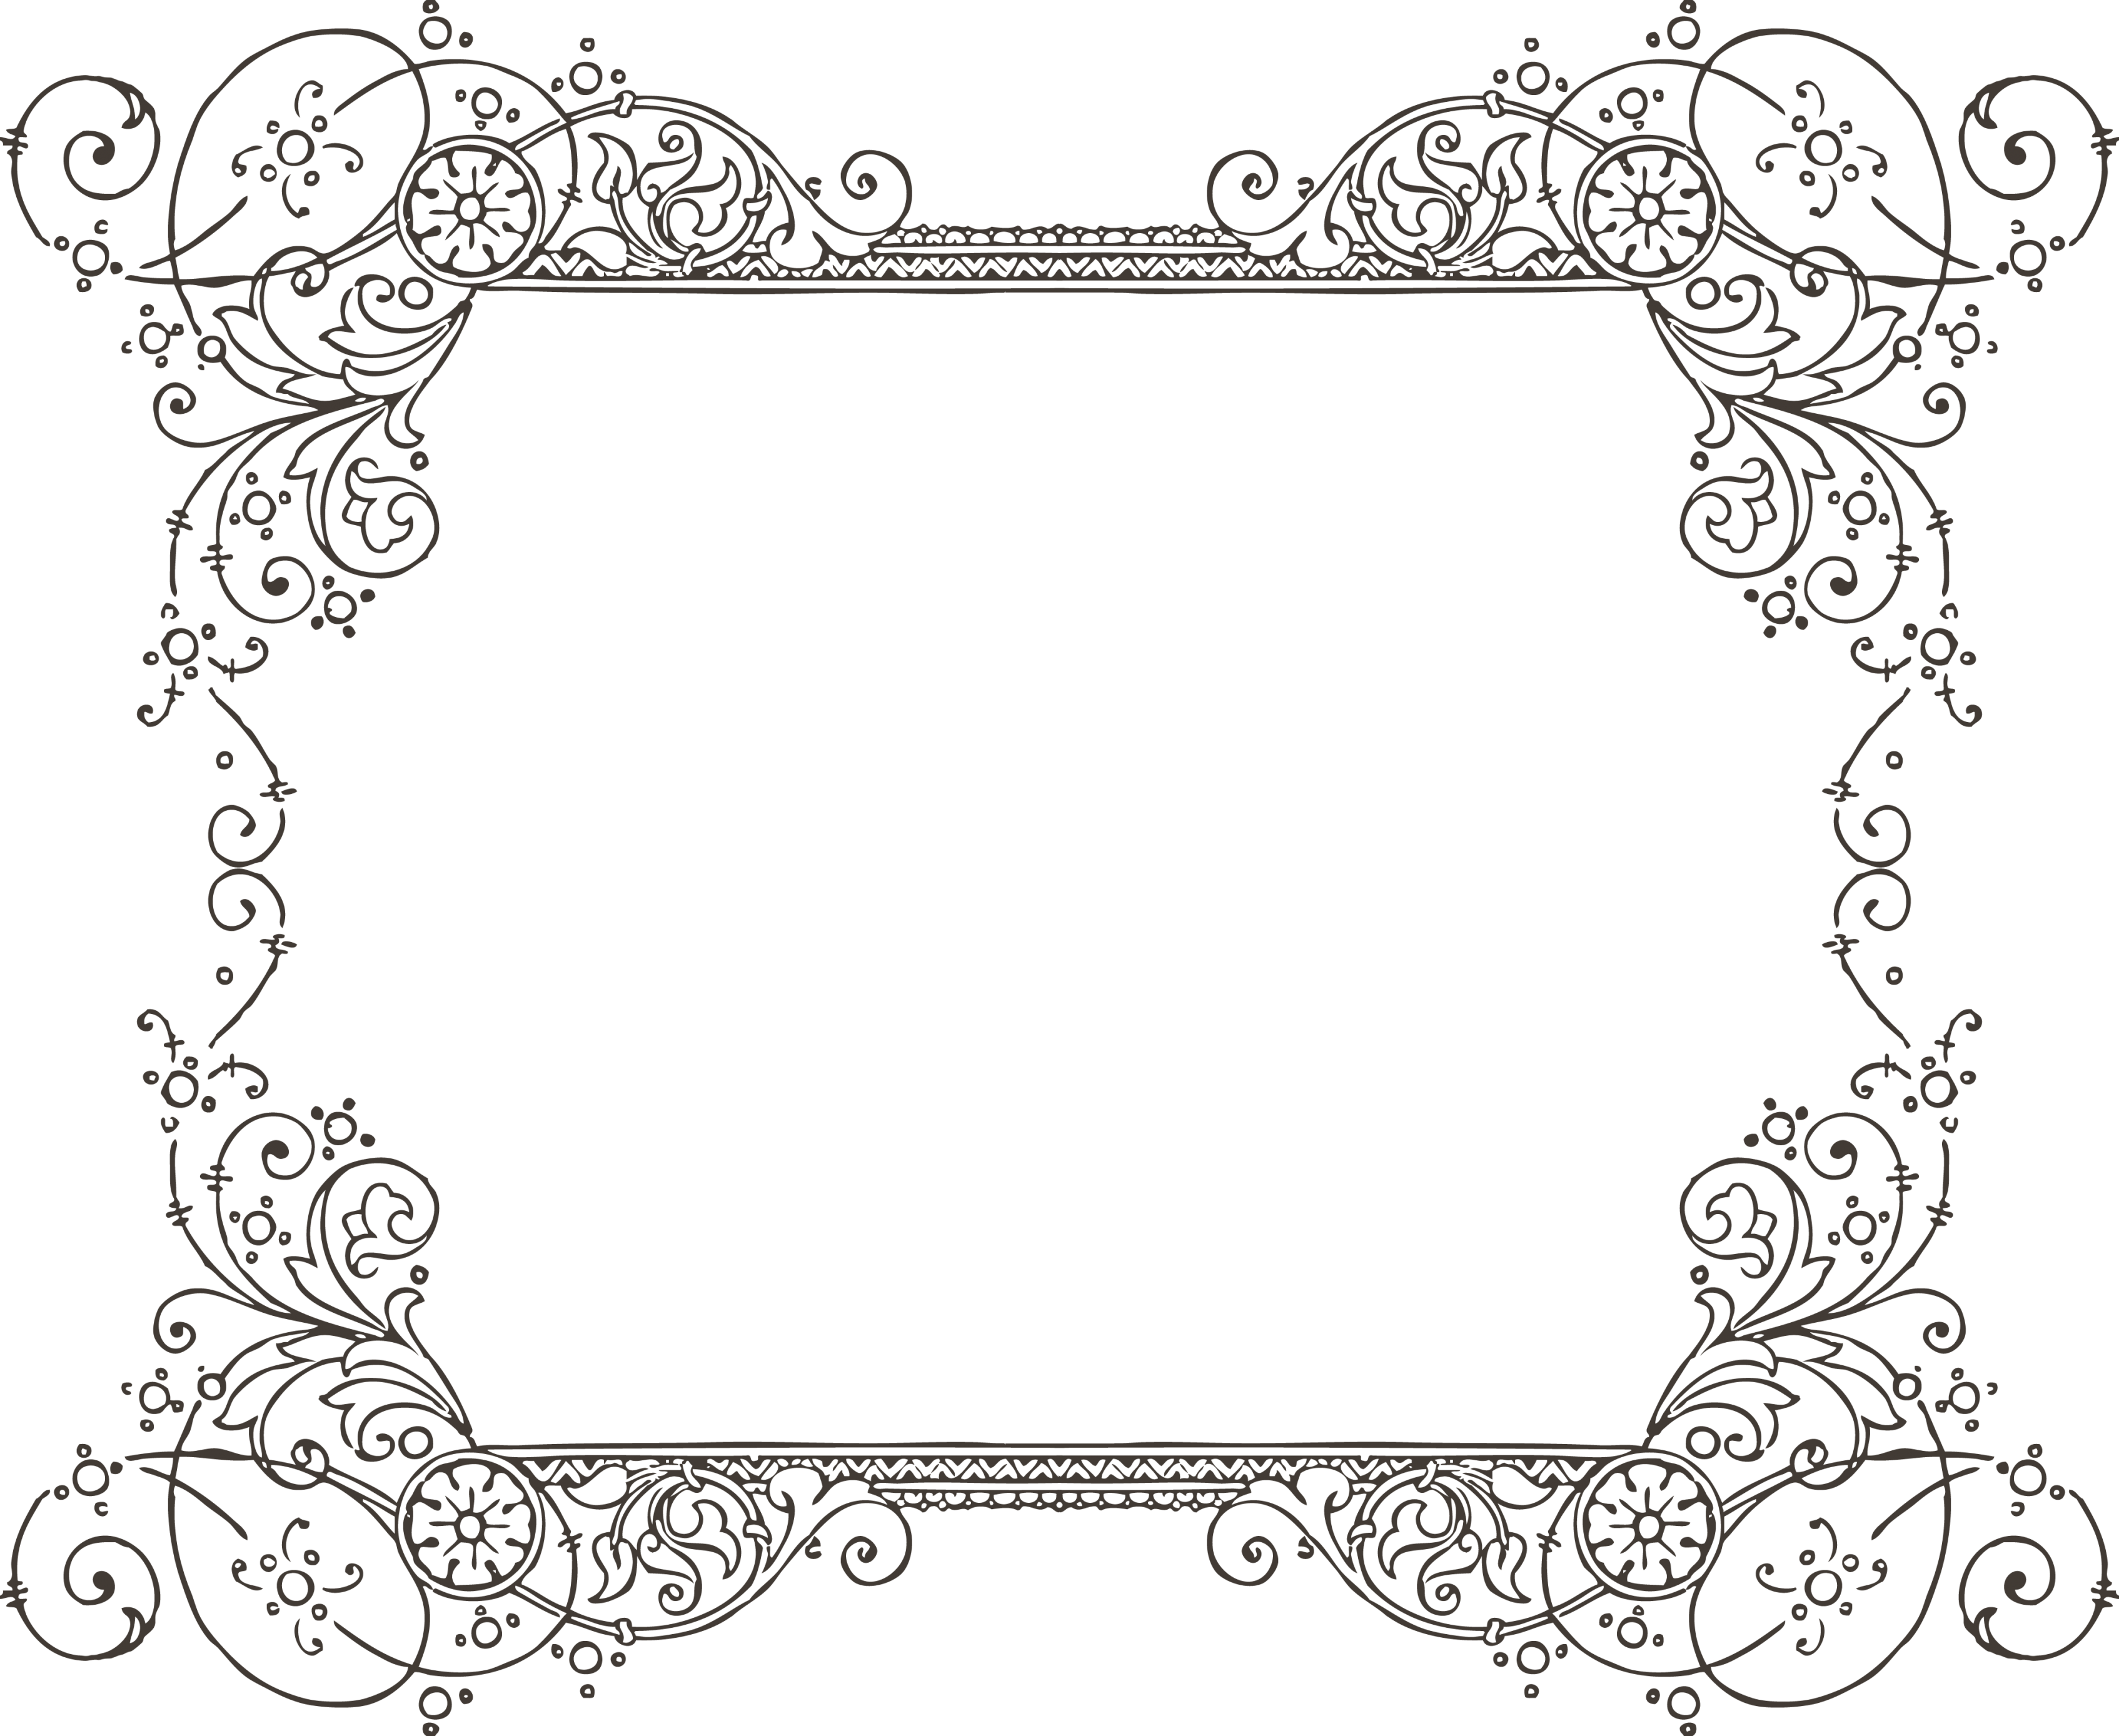 clipart free download Drawing borders classic. And frames picture calligraphic